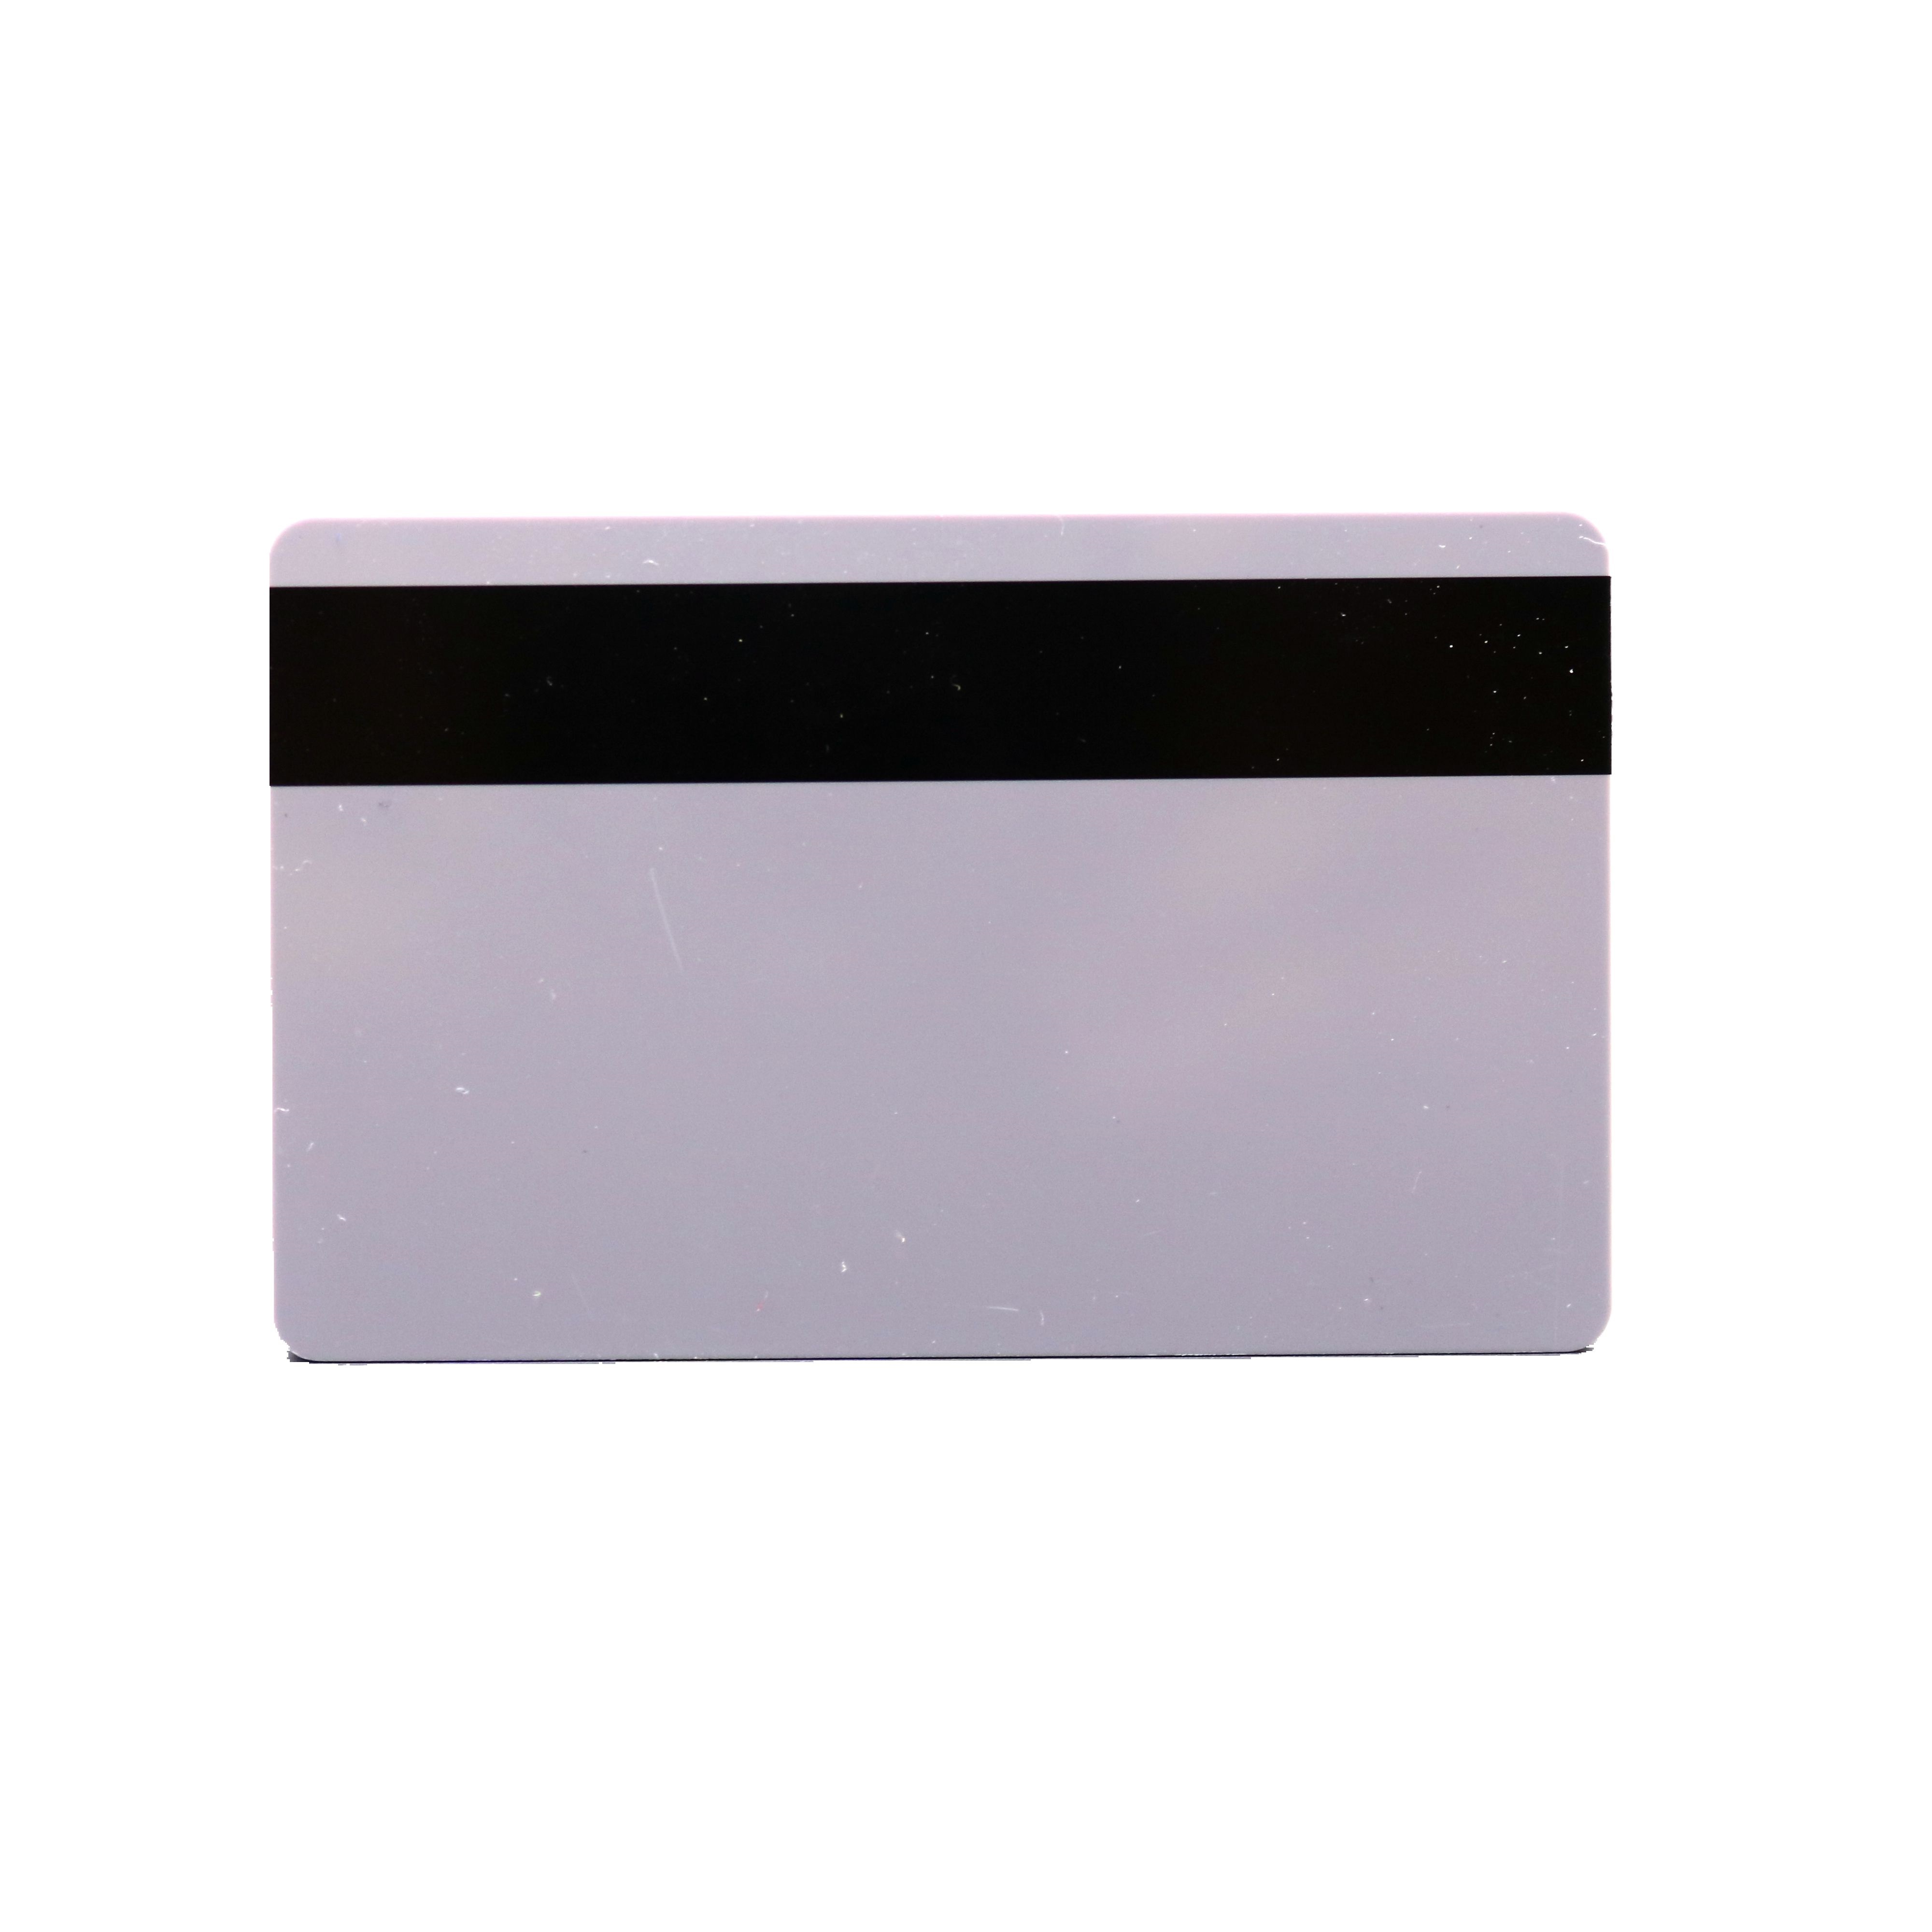 Image 2 - Blank PVC Magnetic Stripe Card 2750 OE Hi Co 3 Track Magnetic Card Support High Resistance-in Access Control Cards from Security & Protection